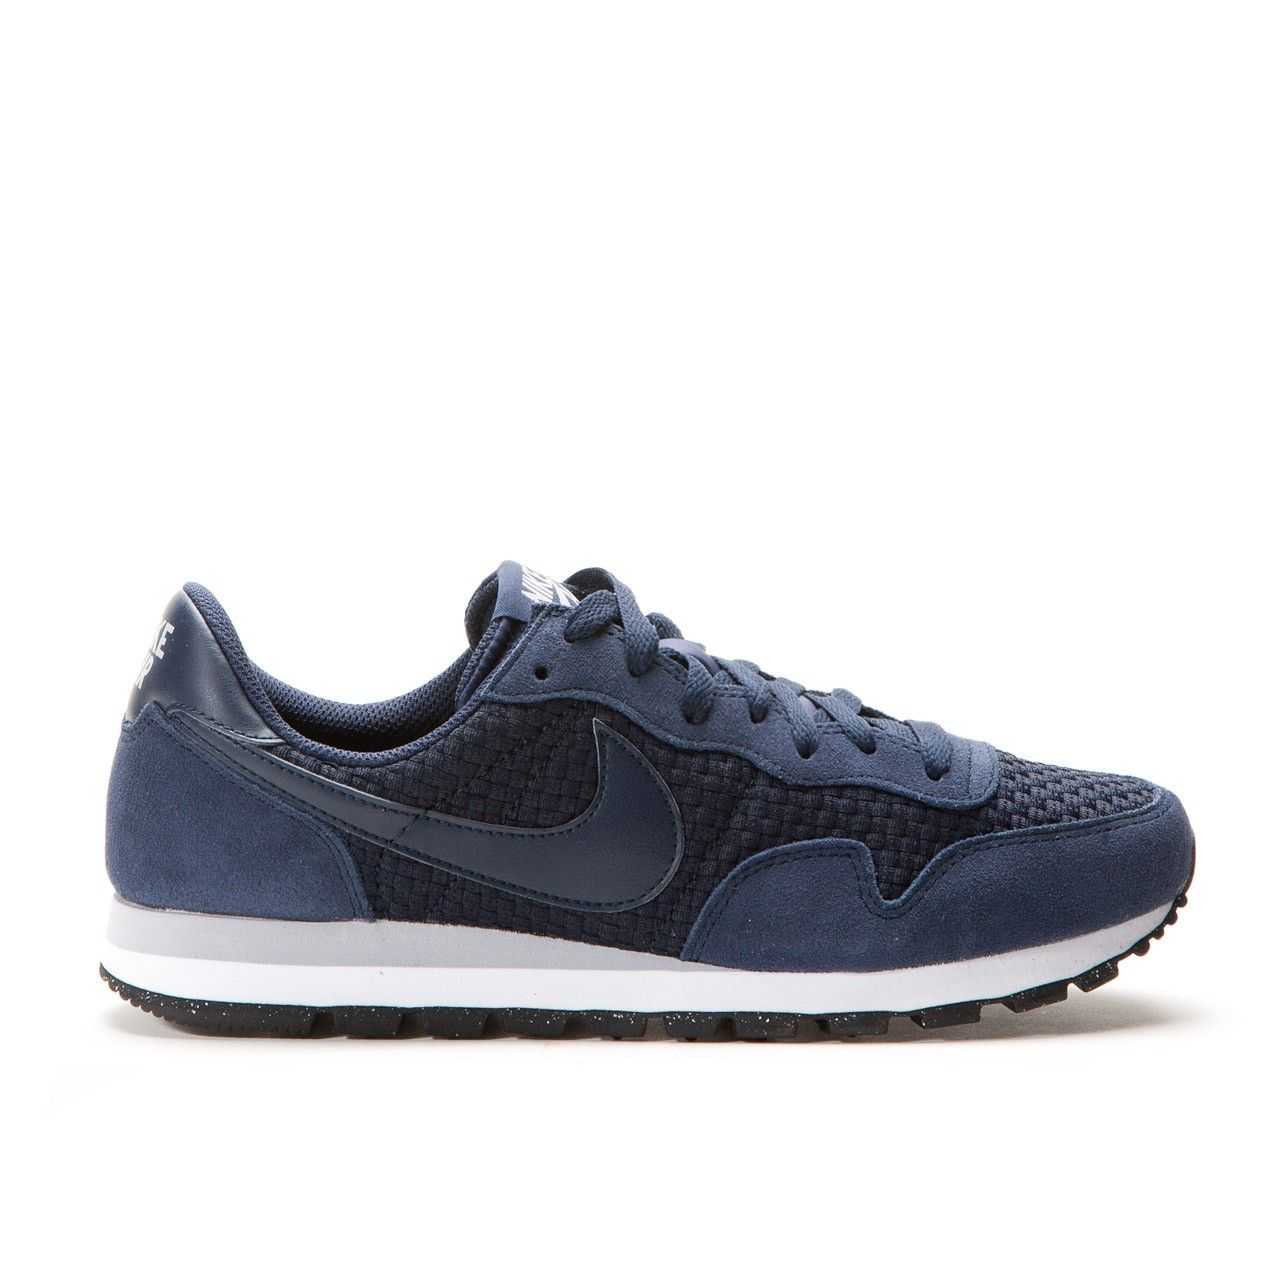 57fea96364c5c Nike Air Pegasus 83 Woven (Obsidian   Wolf Grey   White) in 2019 ...